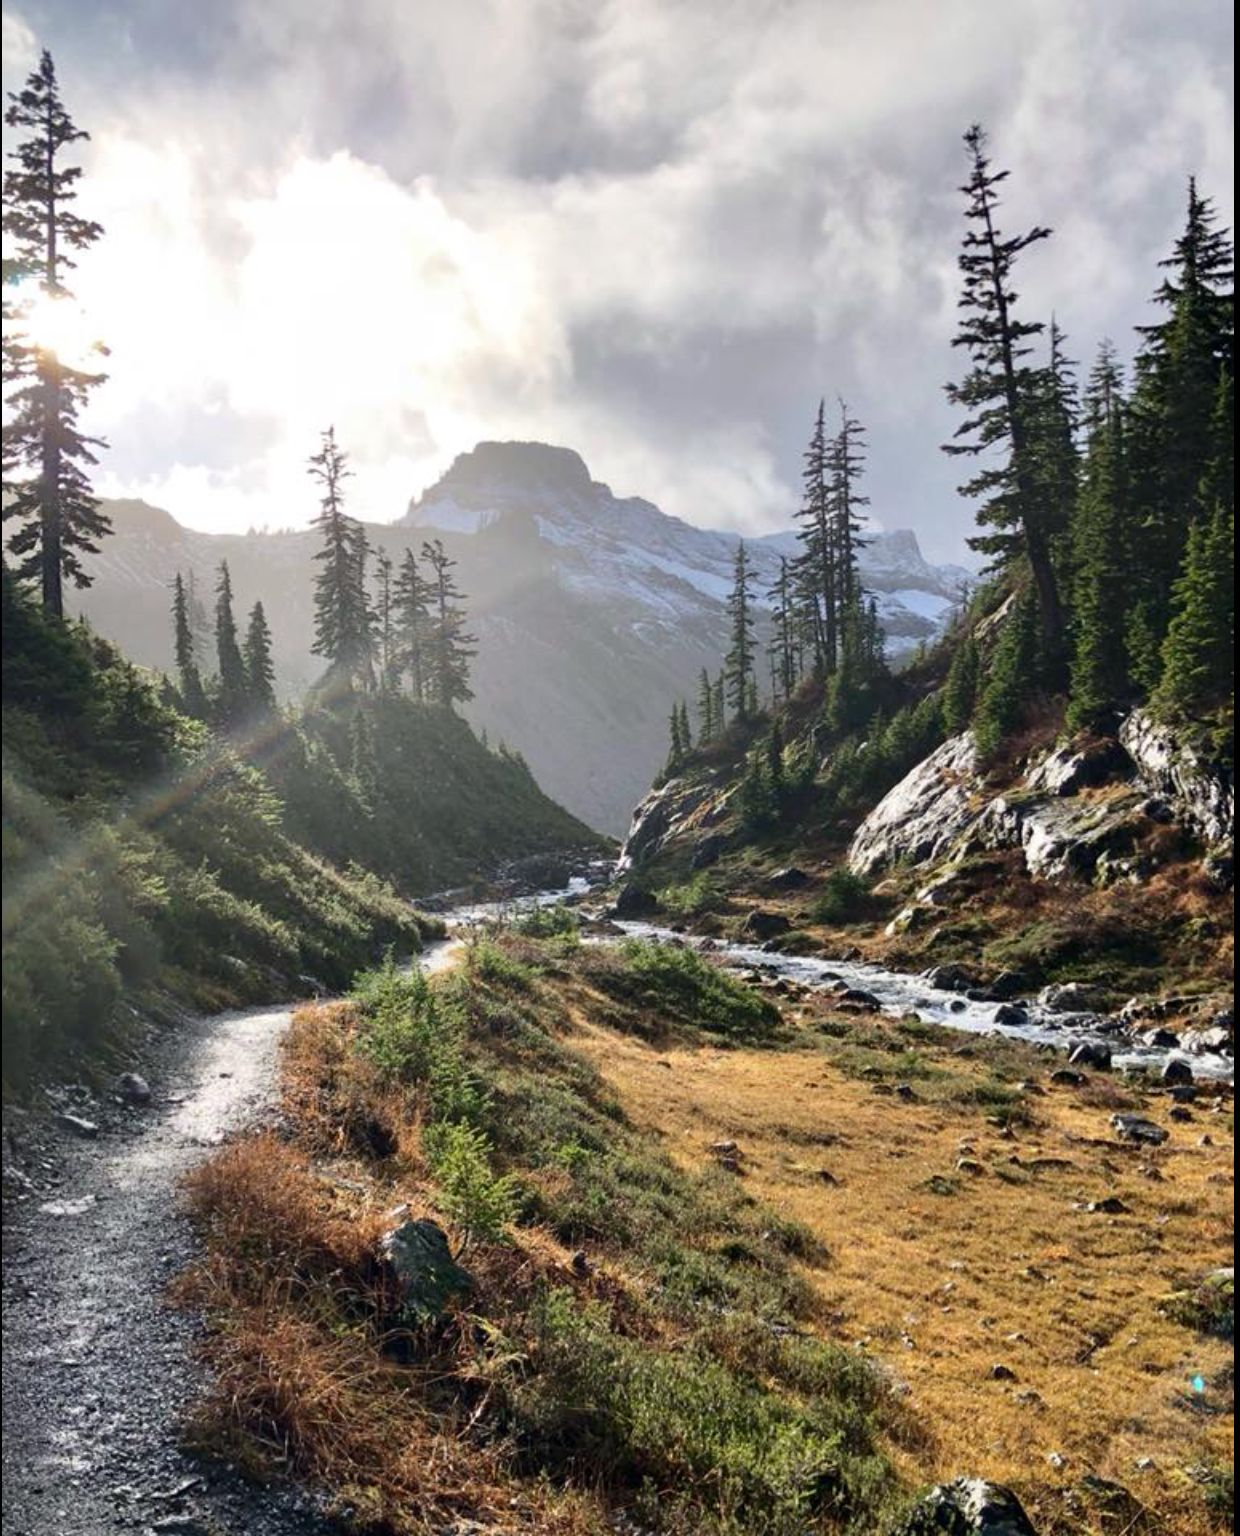 Barley Lakes trail, near the start of the road to Artist